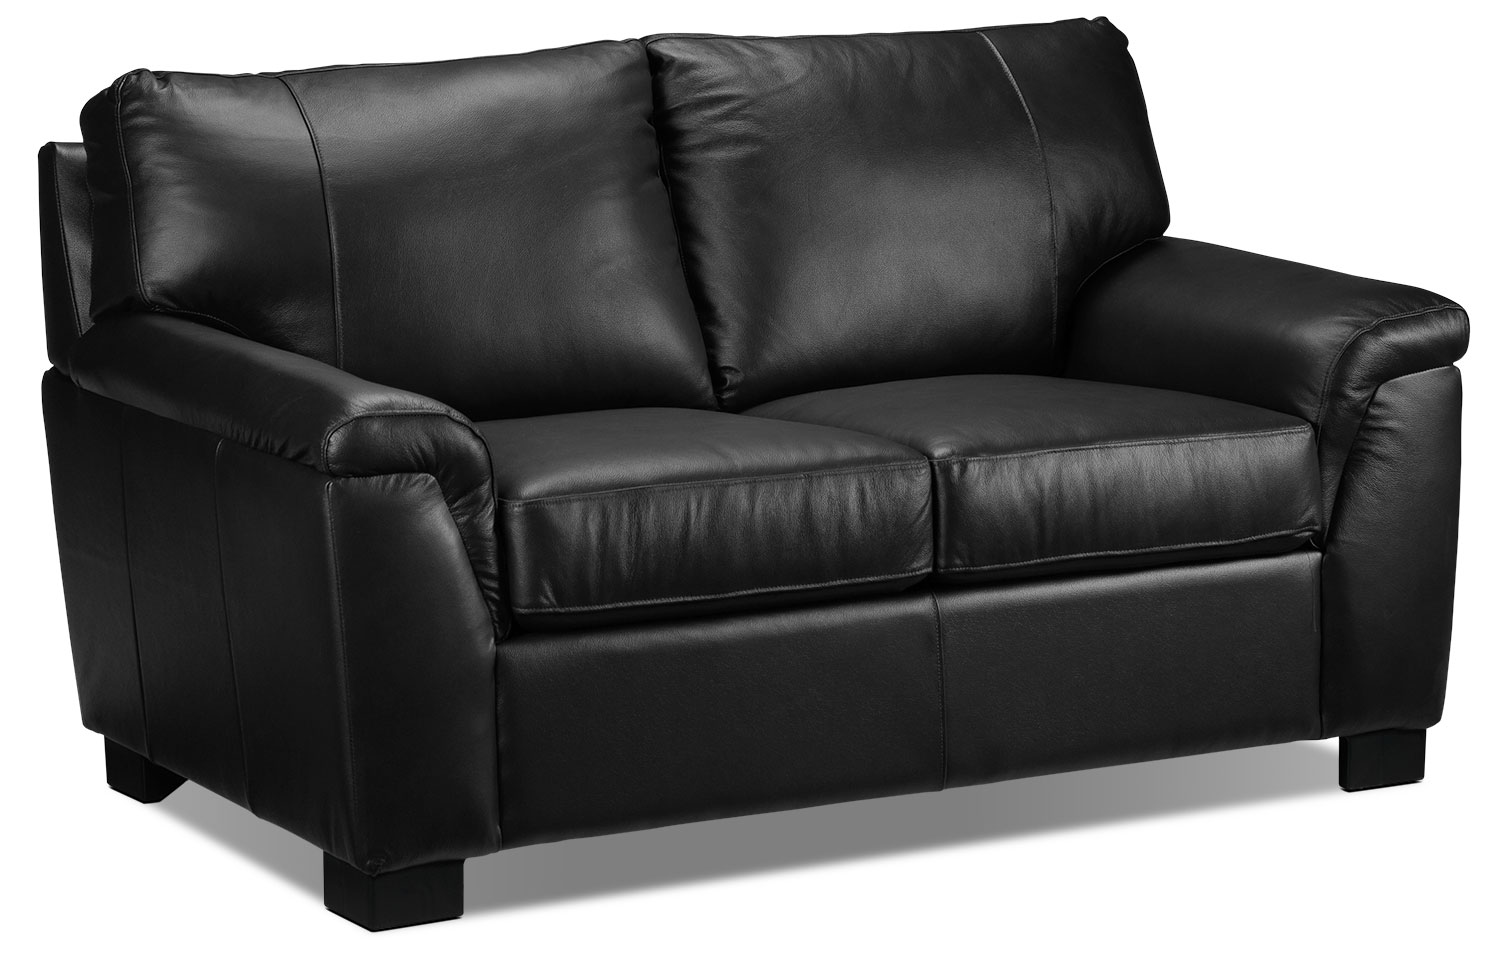 Living Room Furniture - Reynolds Loveseat - Black